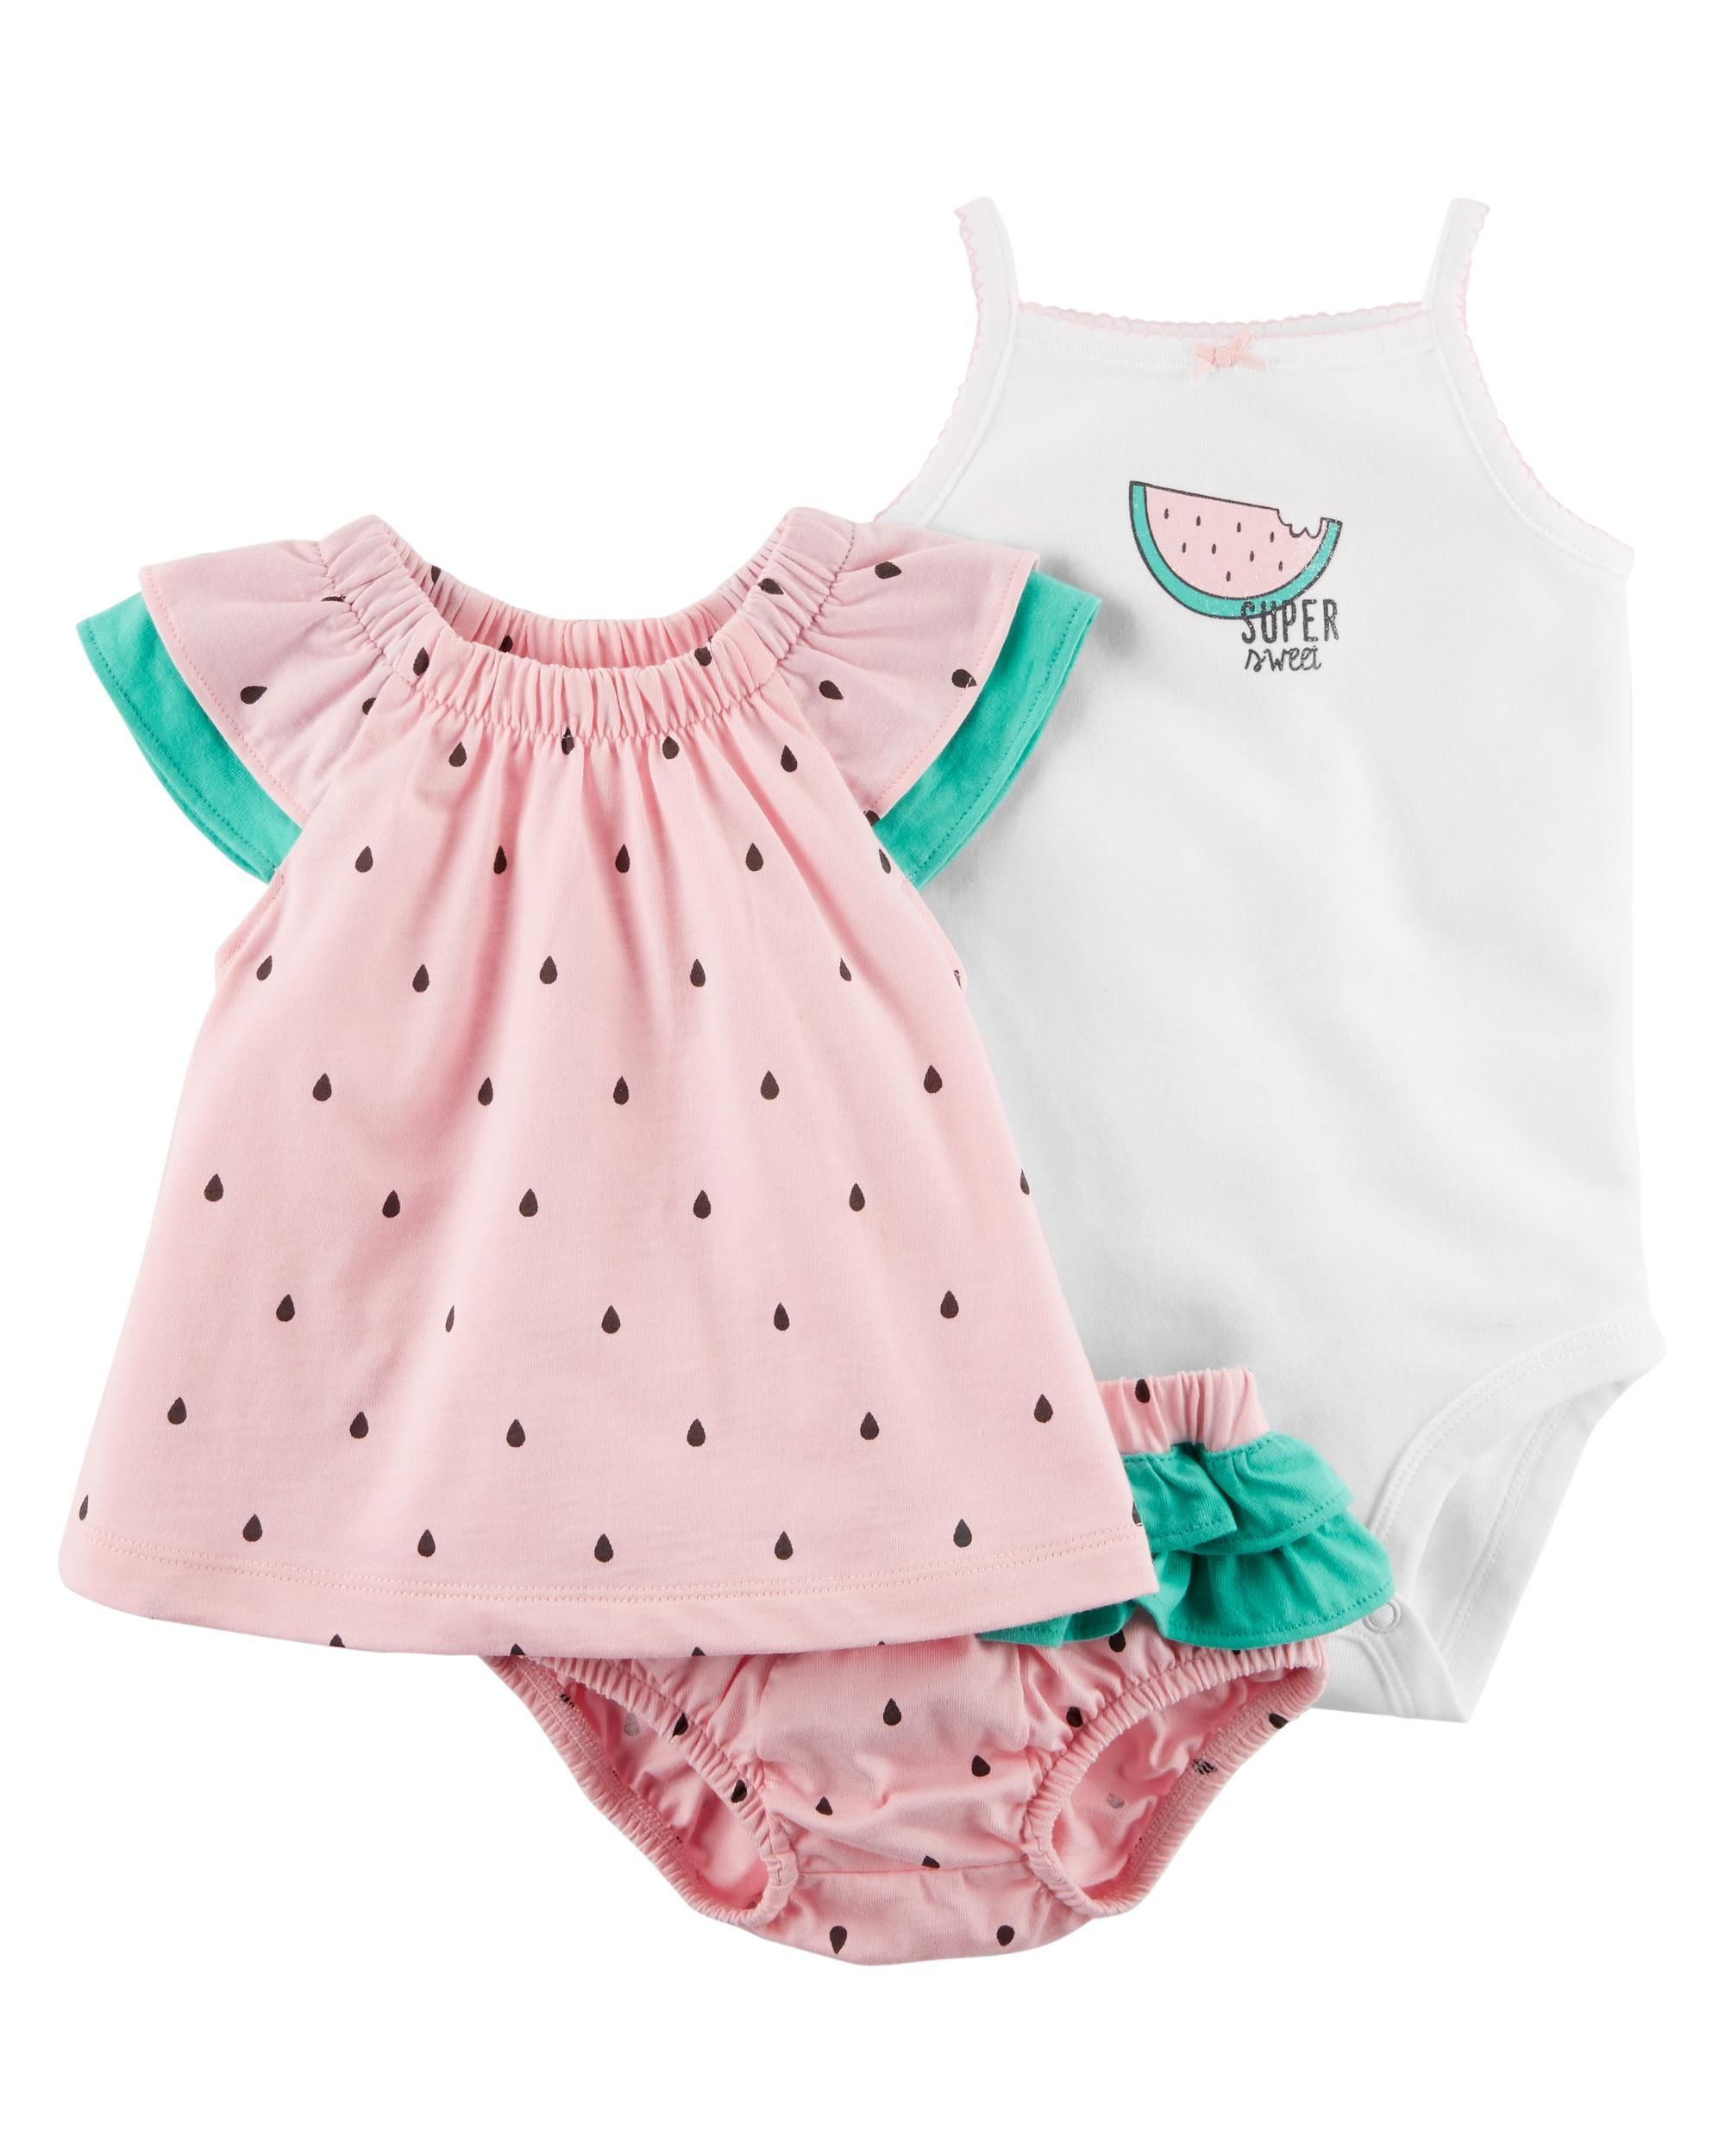 One opening Newborn Infant Baby Girl Watermelon Shorts Girls Summer Casual Bloomer Pants Outfits Clothes